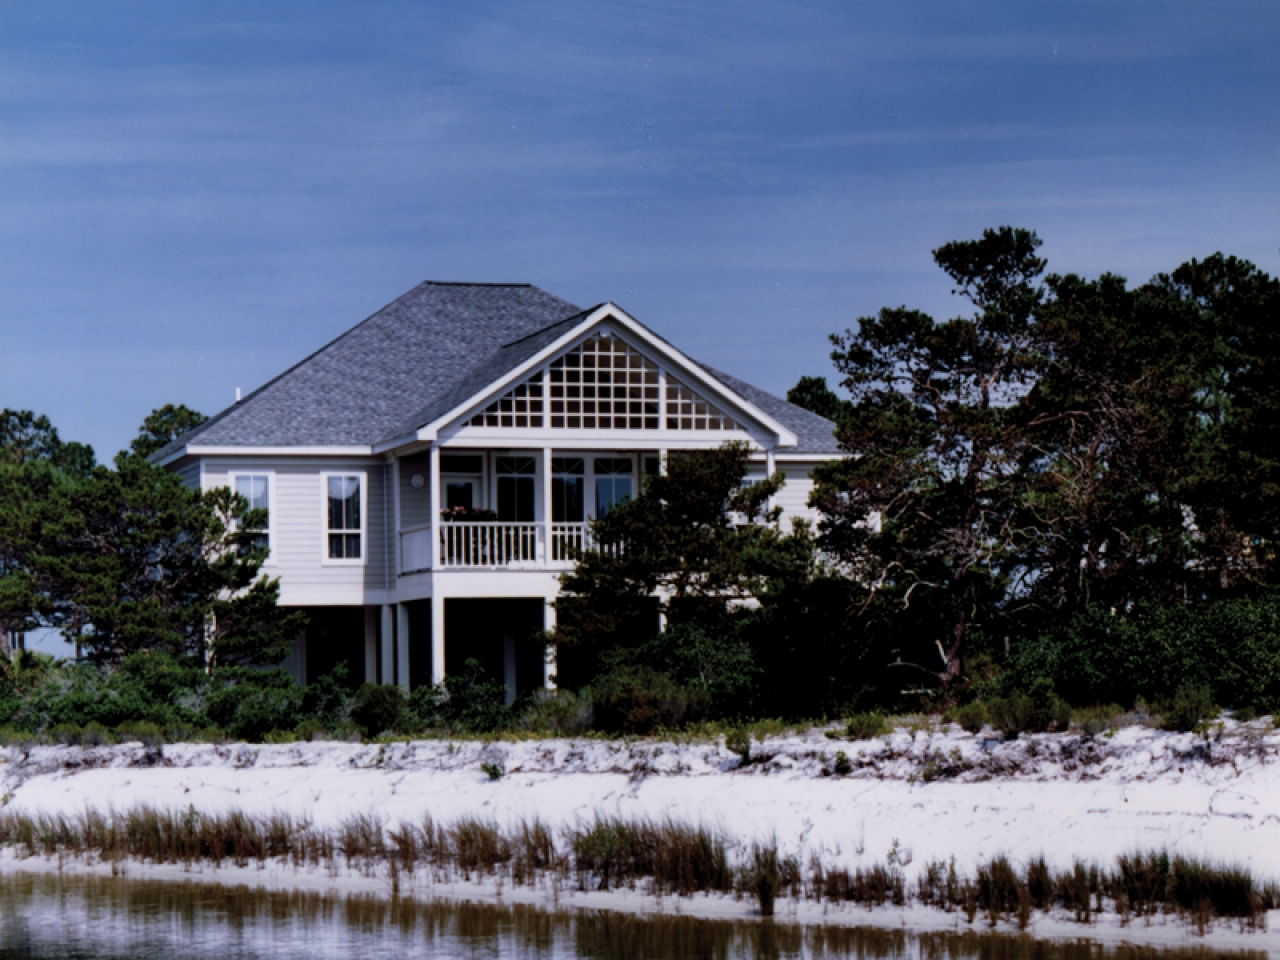 Home plans raised beach house beach style house designs for Coastal style house plans